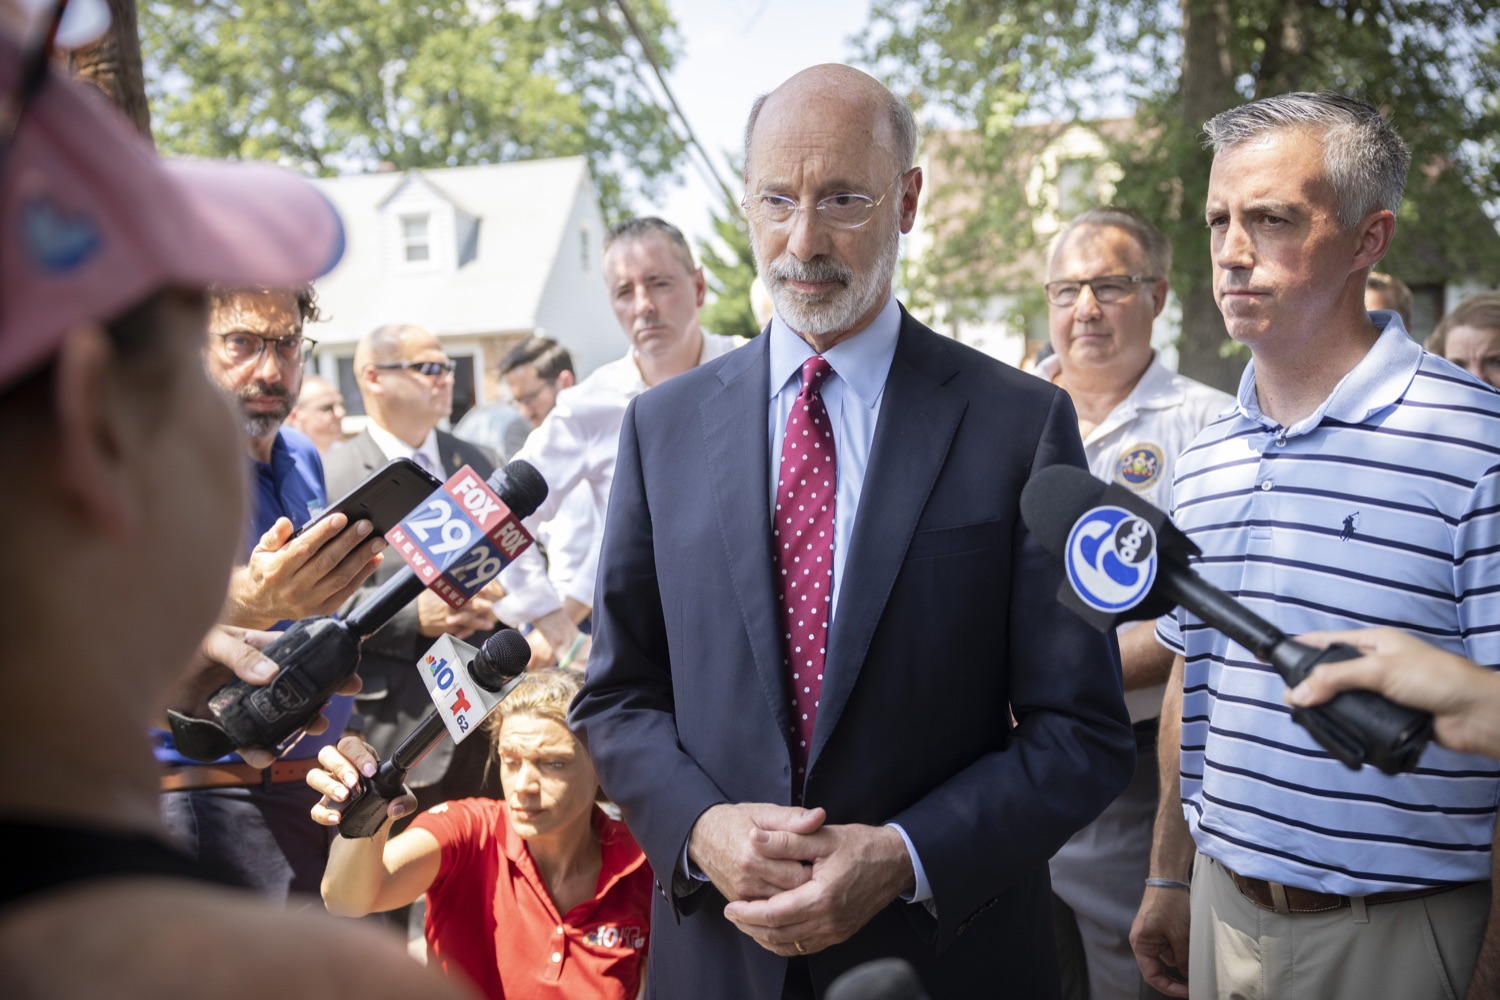 """<a href=""""https://filesource.wostreaming.net/commonwealthofpa/photo/18934_gov_stormdamage_dz_001.jpg"""" target=""""_blank"""">⇣Download Photo<br></a>Pennsylvania Governor Tom Wolf speaking with flood victims and public officials.    Governor Tom Wolf visited Bristol and Andalusia in Bucks County to tour communities affected by severe weather and flash flooding. The governor was joined by local officials and legislators to visit damaged homes and speak to residents. JULY 16, 2021 - ANDALUSIA, PA"""